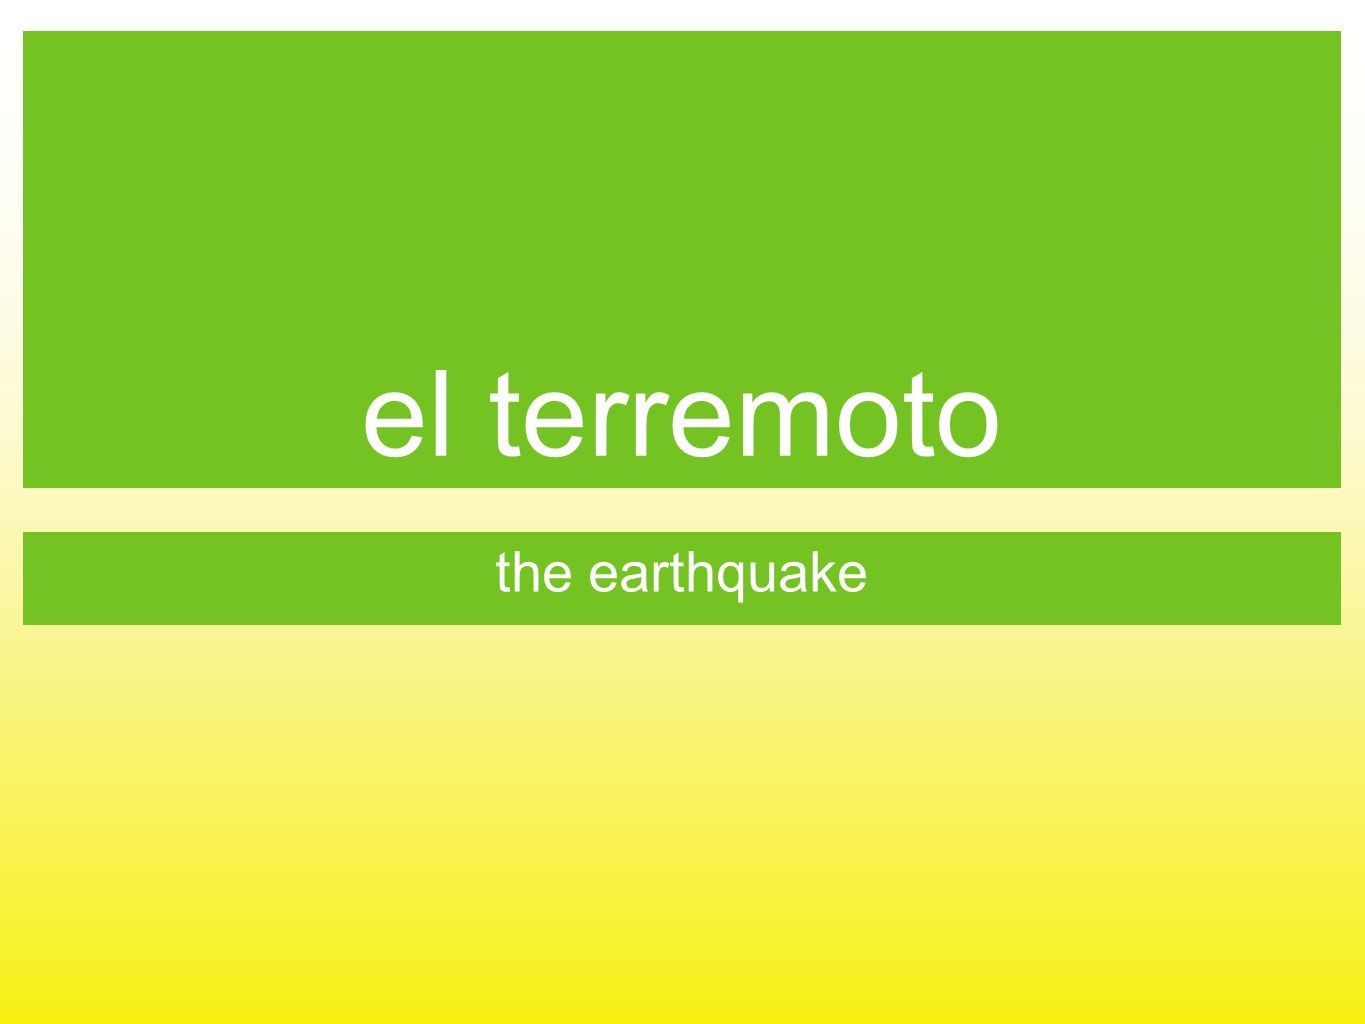 el terremoto the earthquake